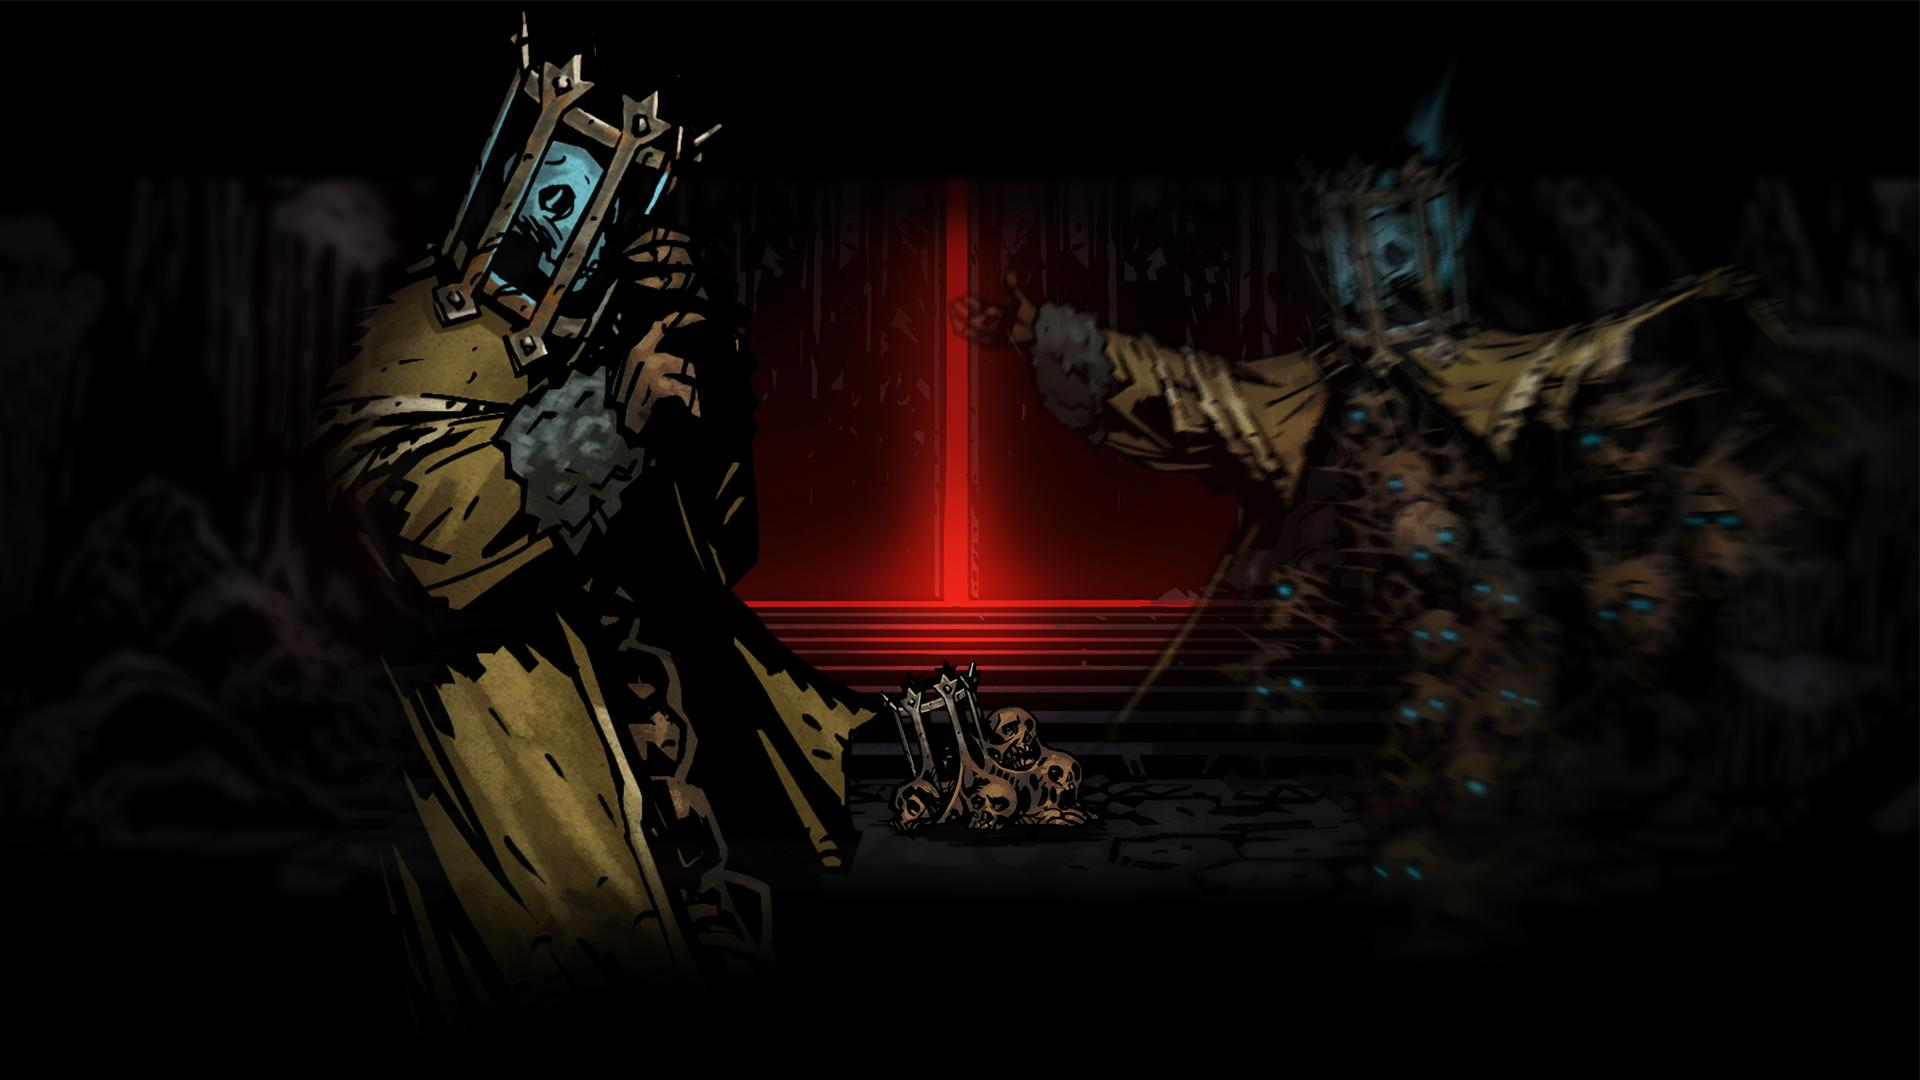 Wallpaper armor paladin warrior skeletons Darkest Dungeon images